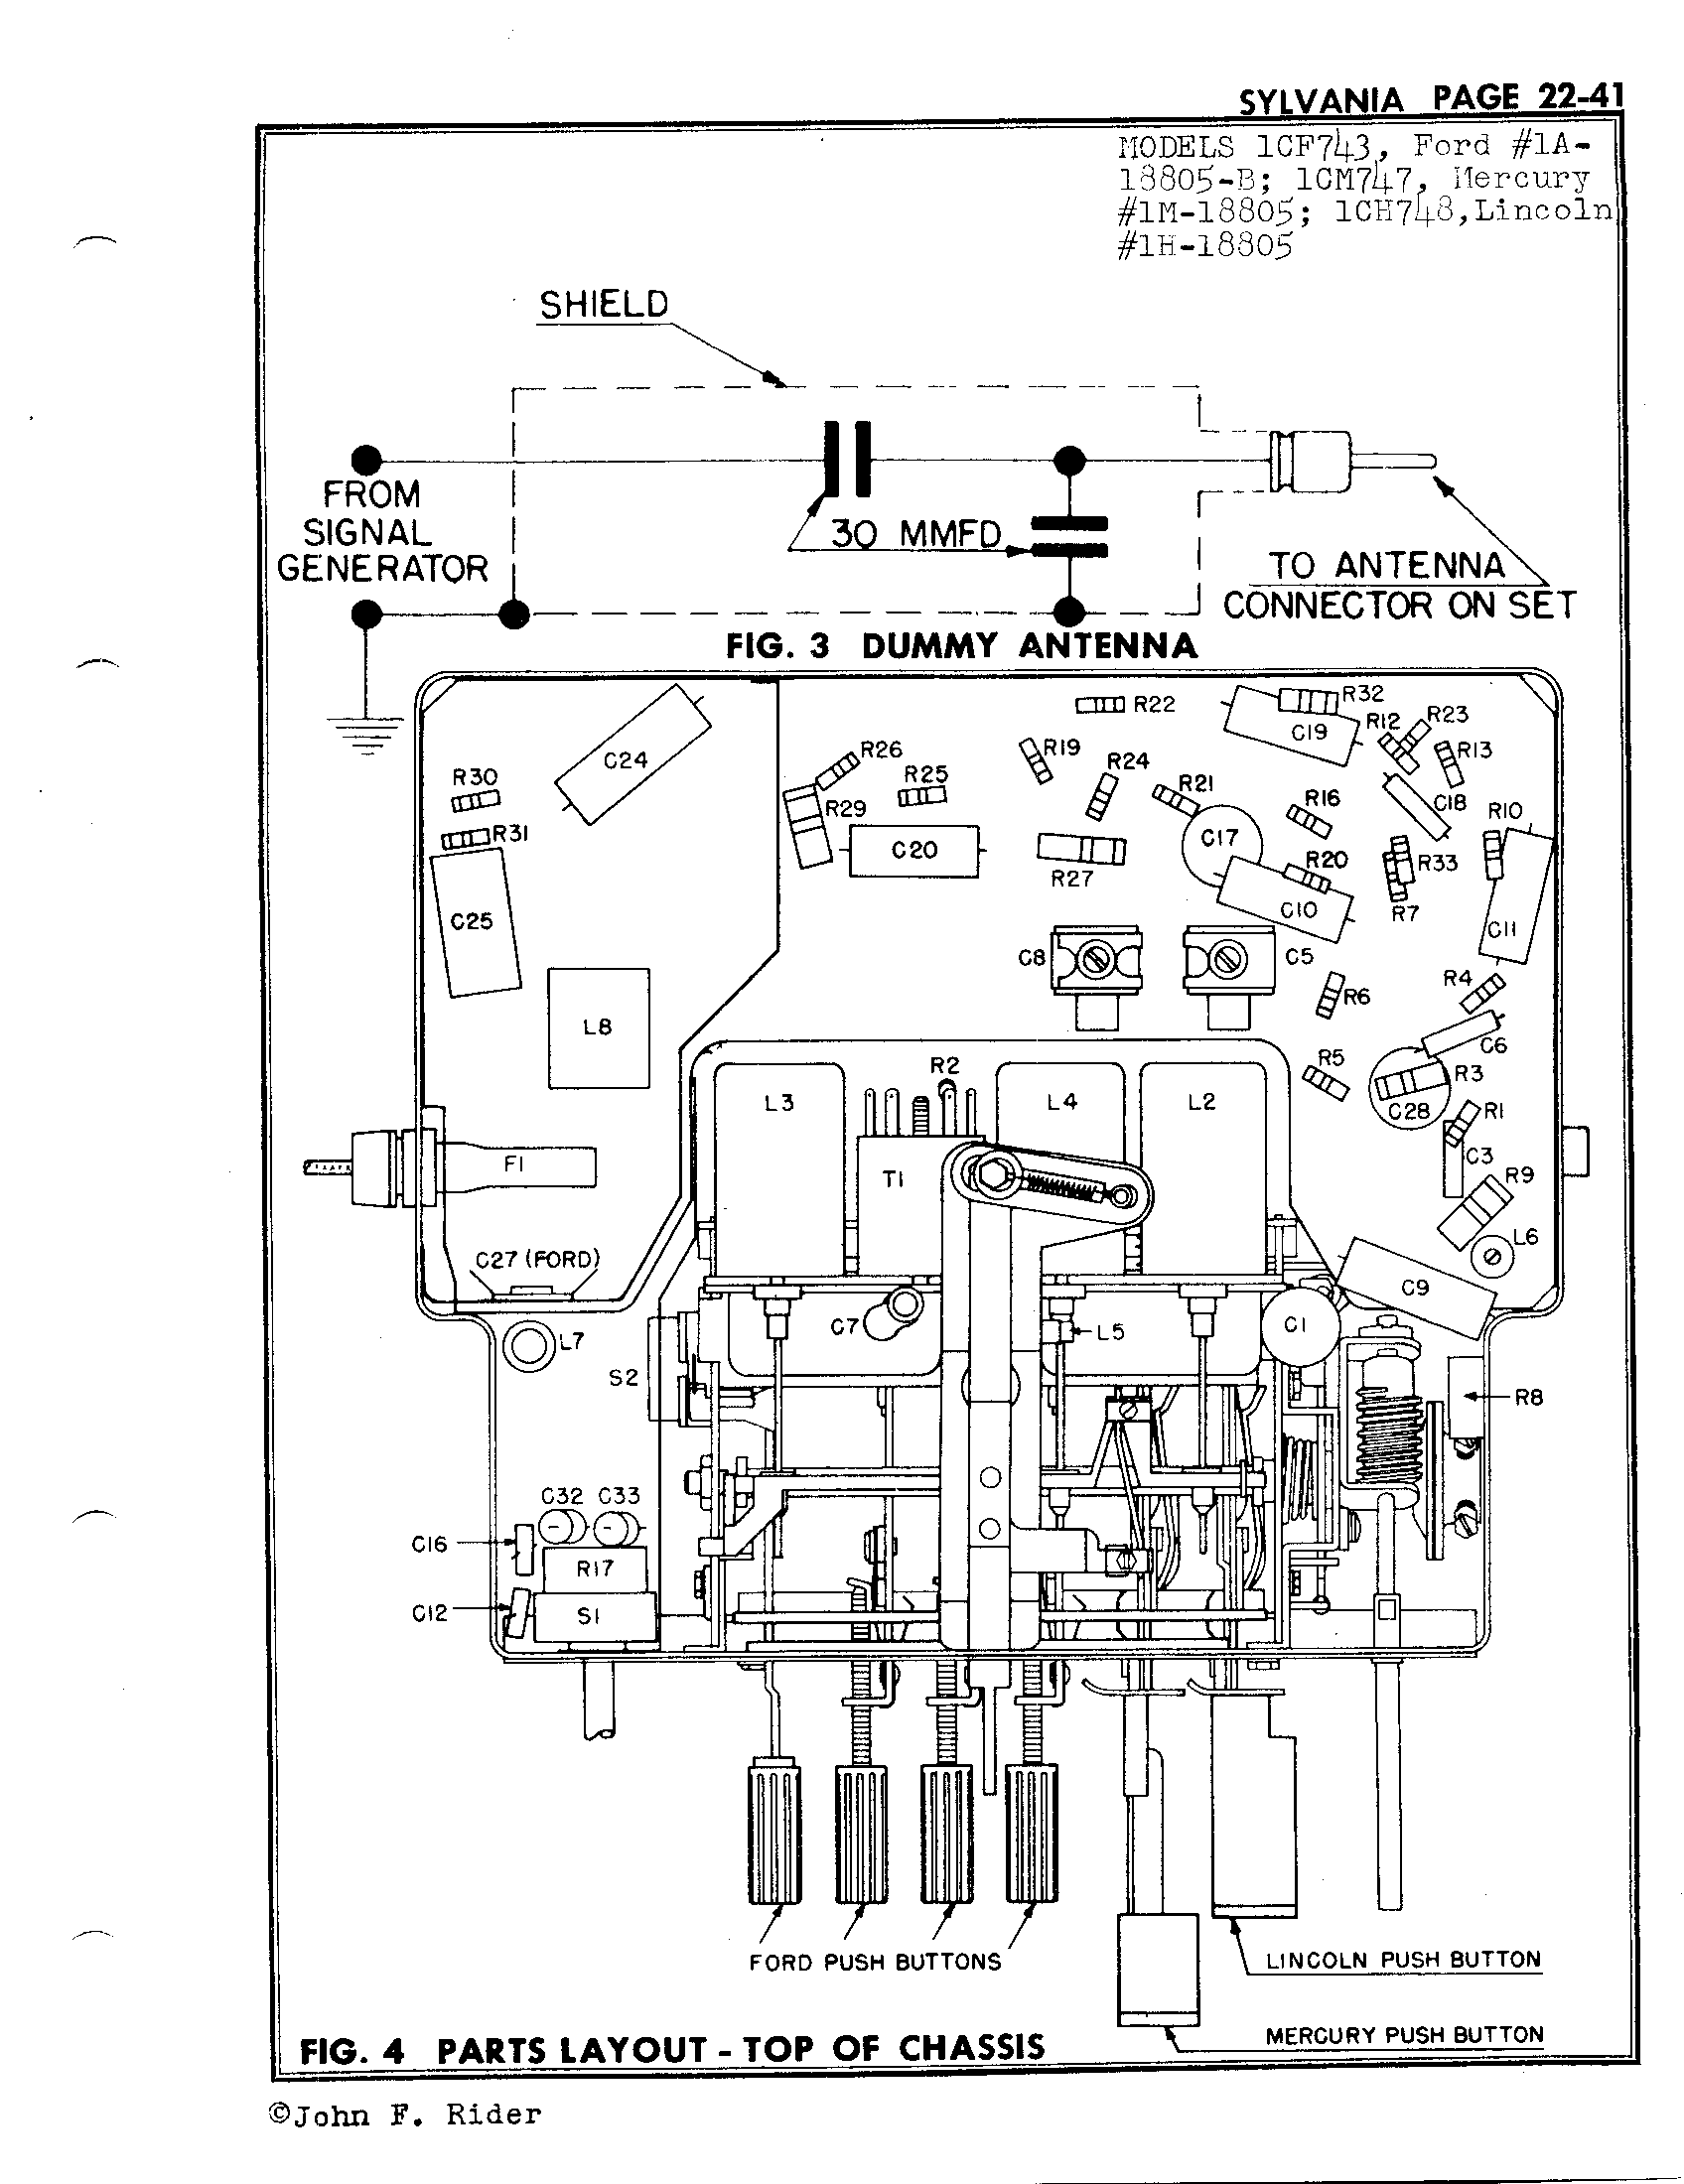 Sylvania Electric Products 1cf743 Antique Electronic Supply. Page 3 5275 Kb Rider Manual Volume 22. Wiring. Sylvania Tube Radio Schematics At Scoala.co